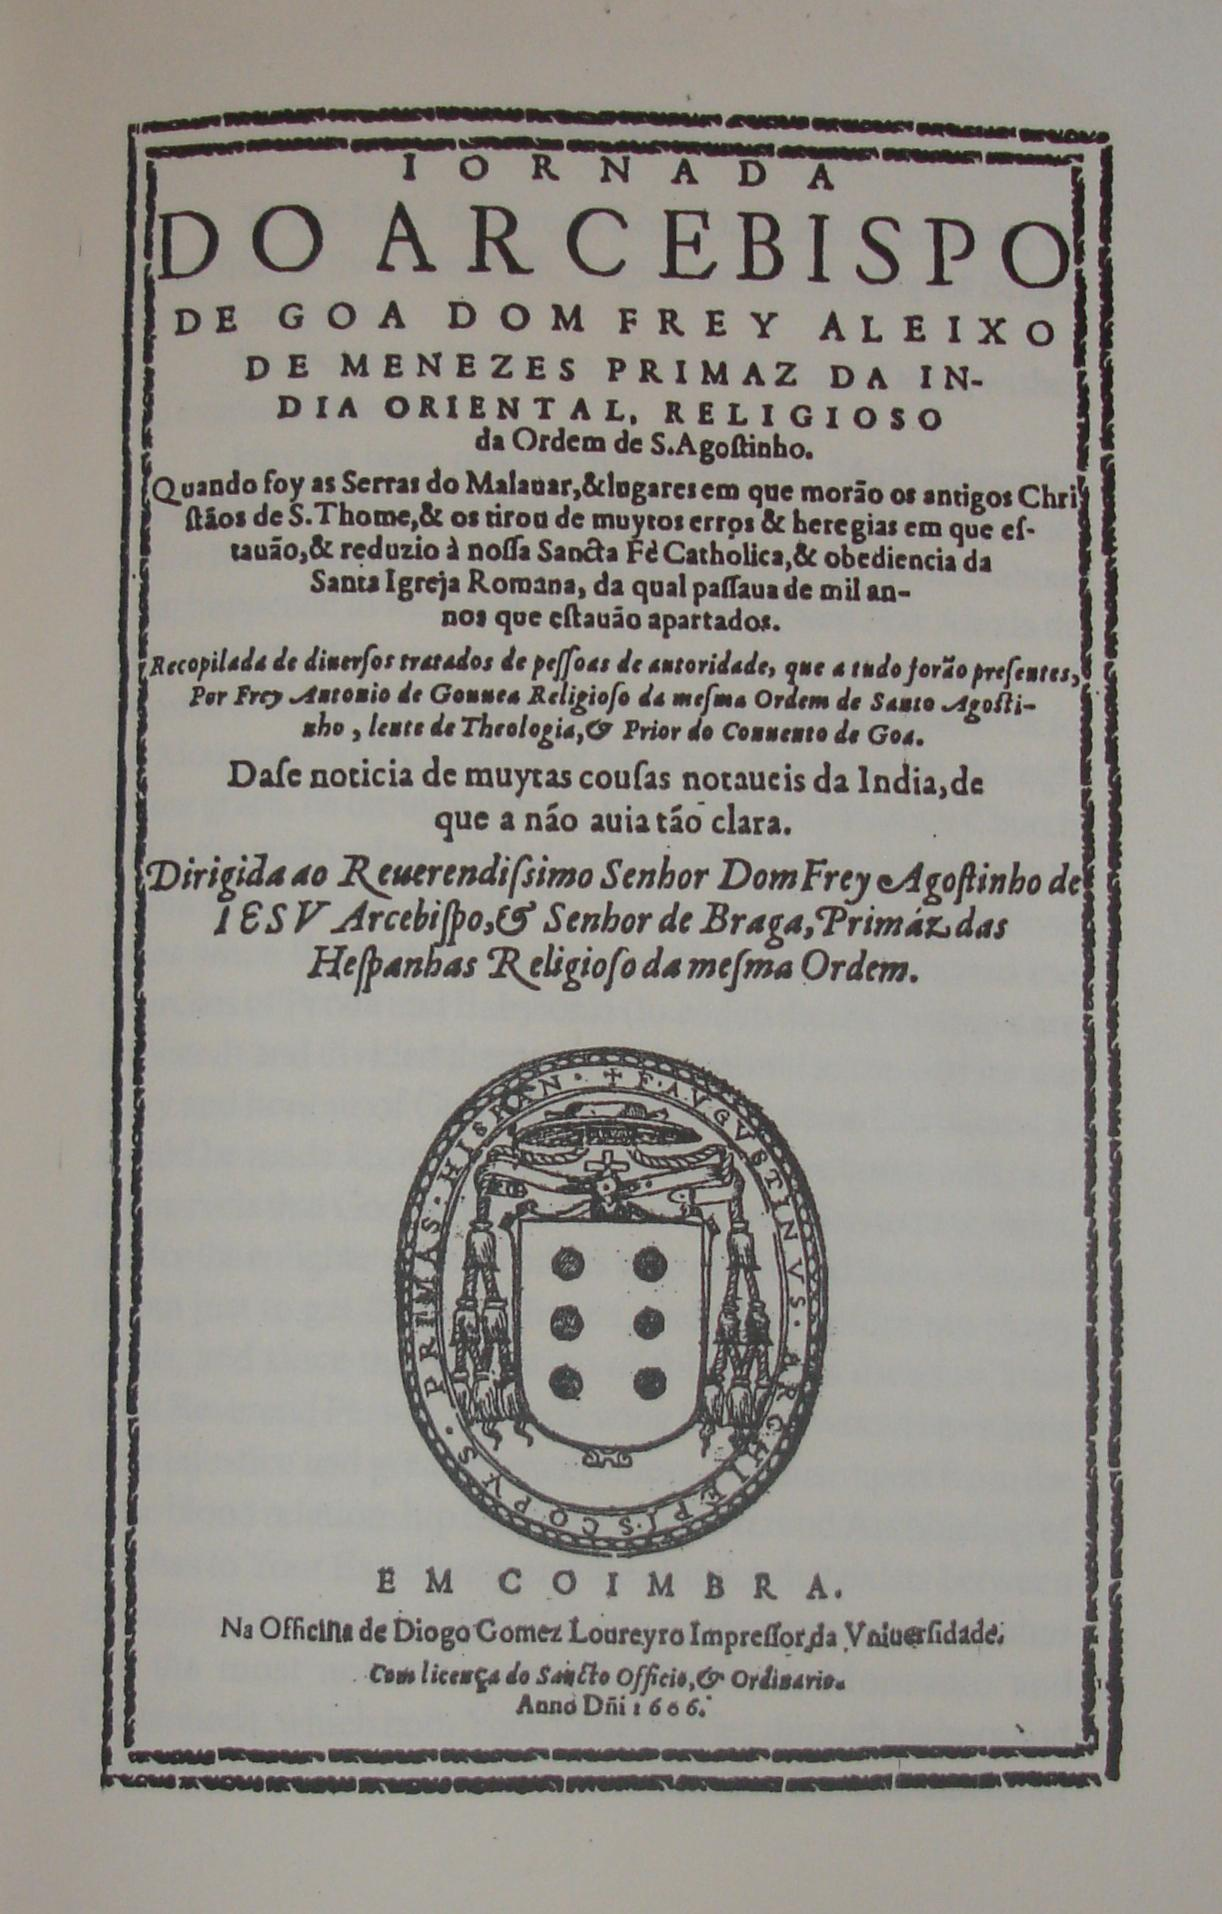 jornada of dom alexis de menezes original cover Jornada of Dom Alexis de Menezes: A Portuguese account of the Sixteenth century Malabar edited by Dr. Pius Malekandathil